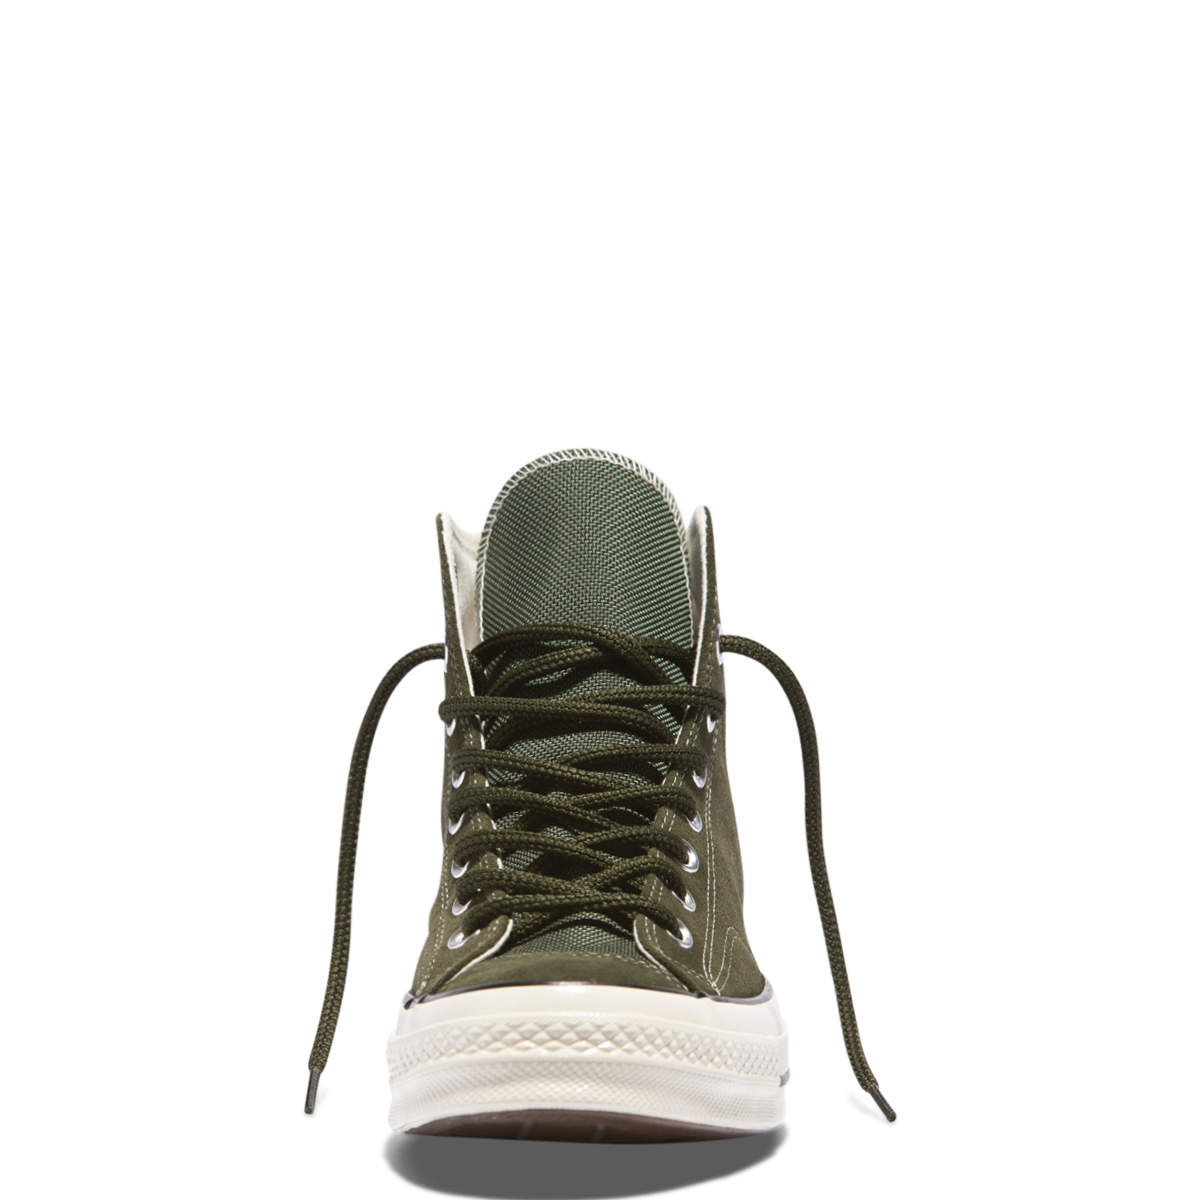 ae1319e6a22 CHUCK TAYLOR ALL STAR 70 BASE CAMP SUEDE HIGH TOP – The Common ...